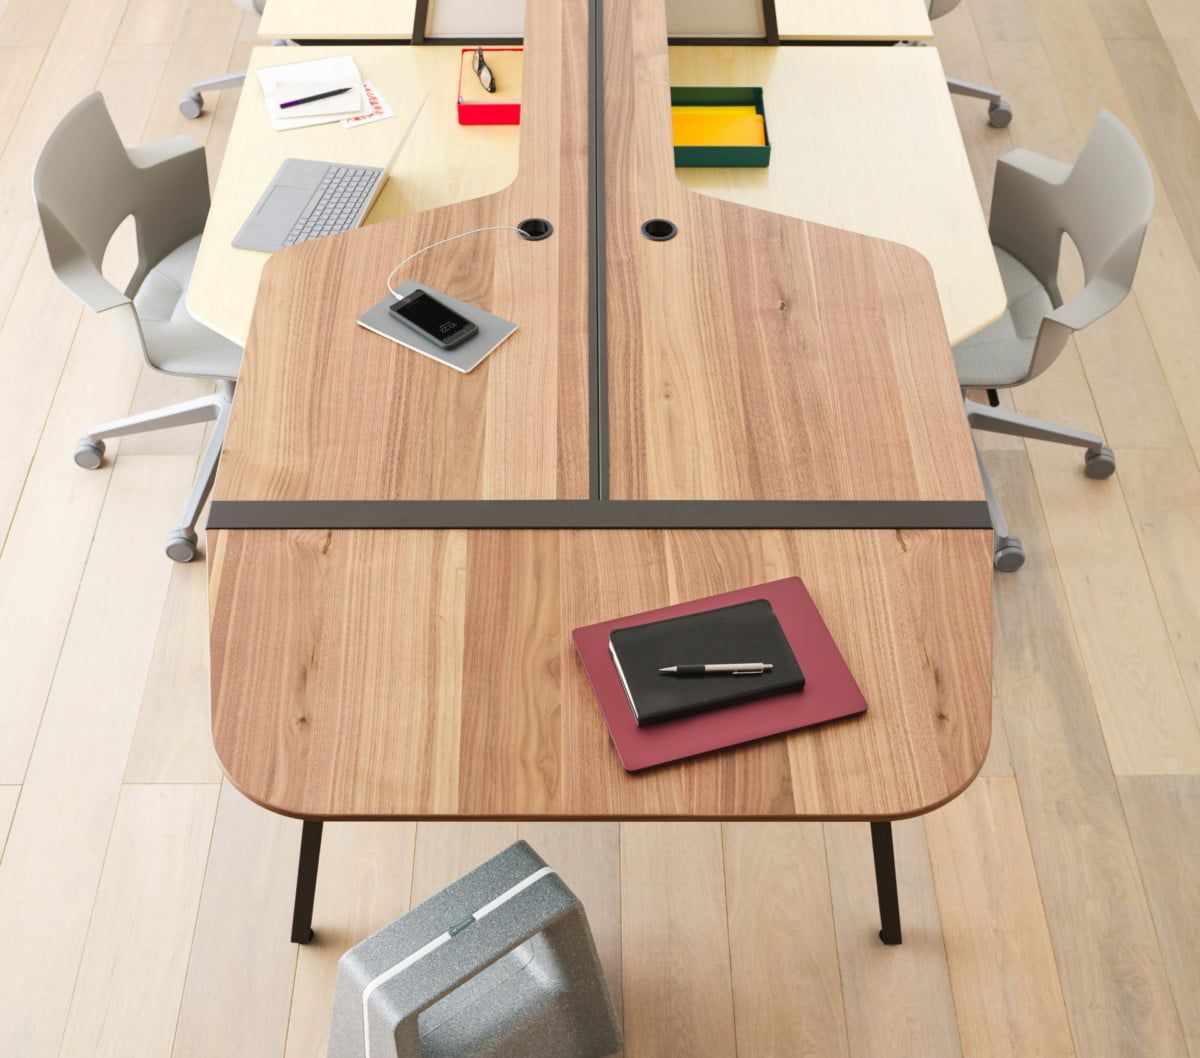 Bivi Collection of Modular Office Desk Systems | Modular office